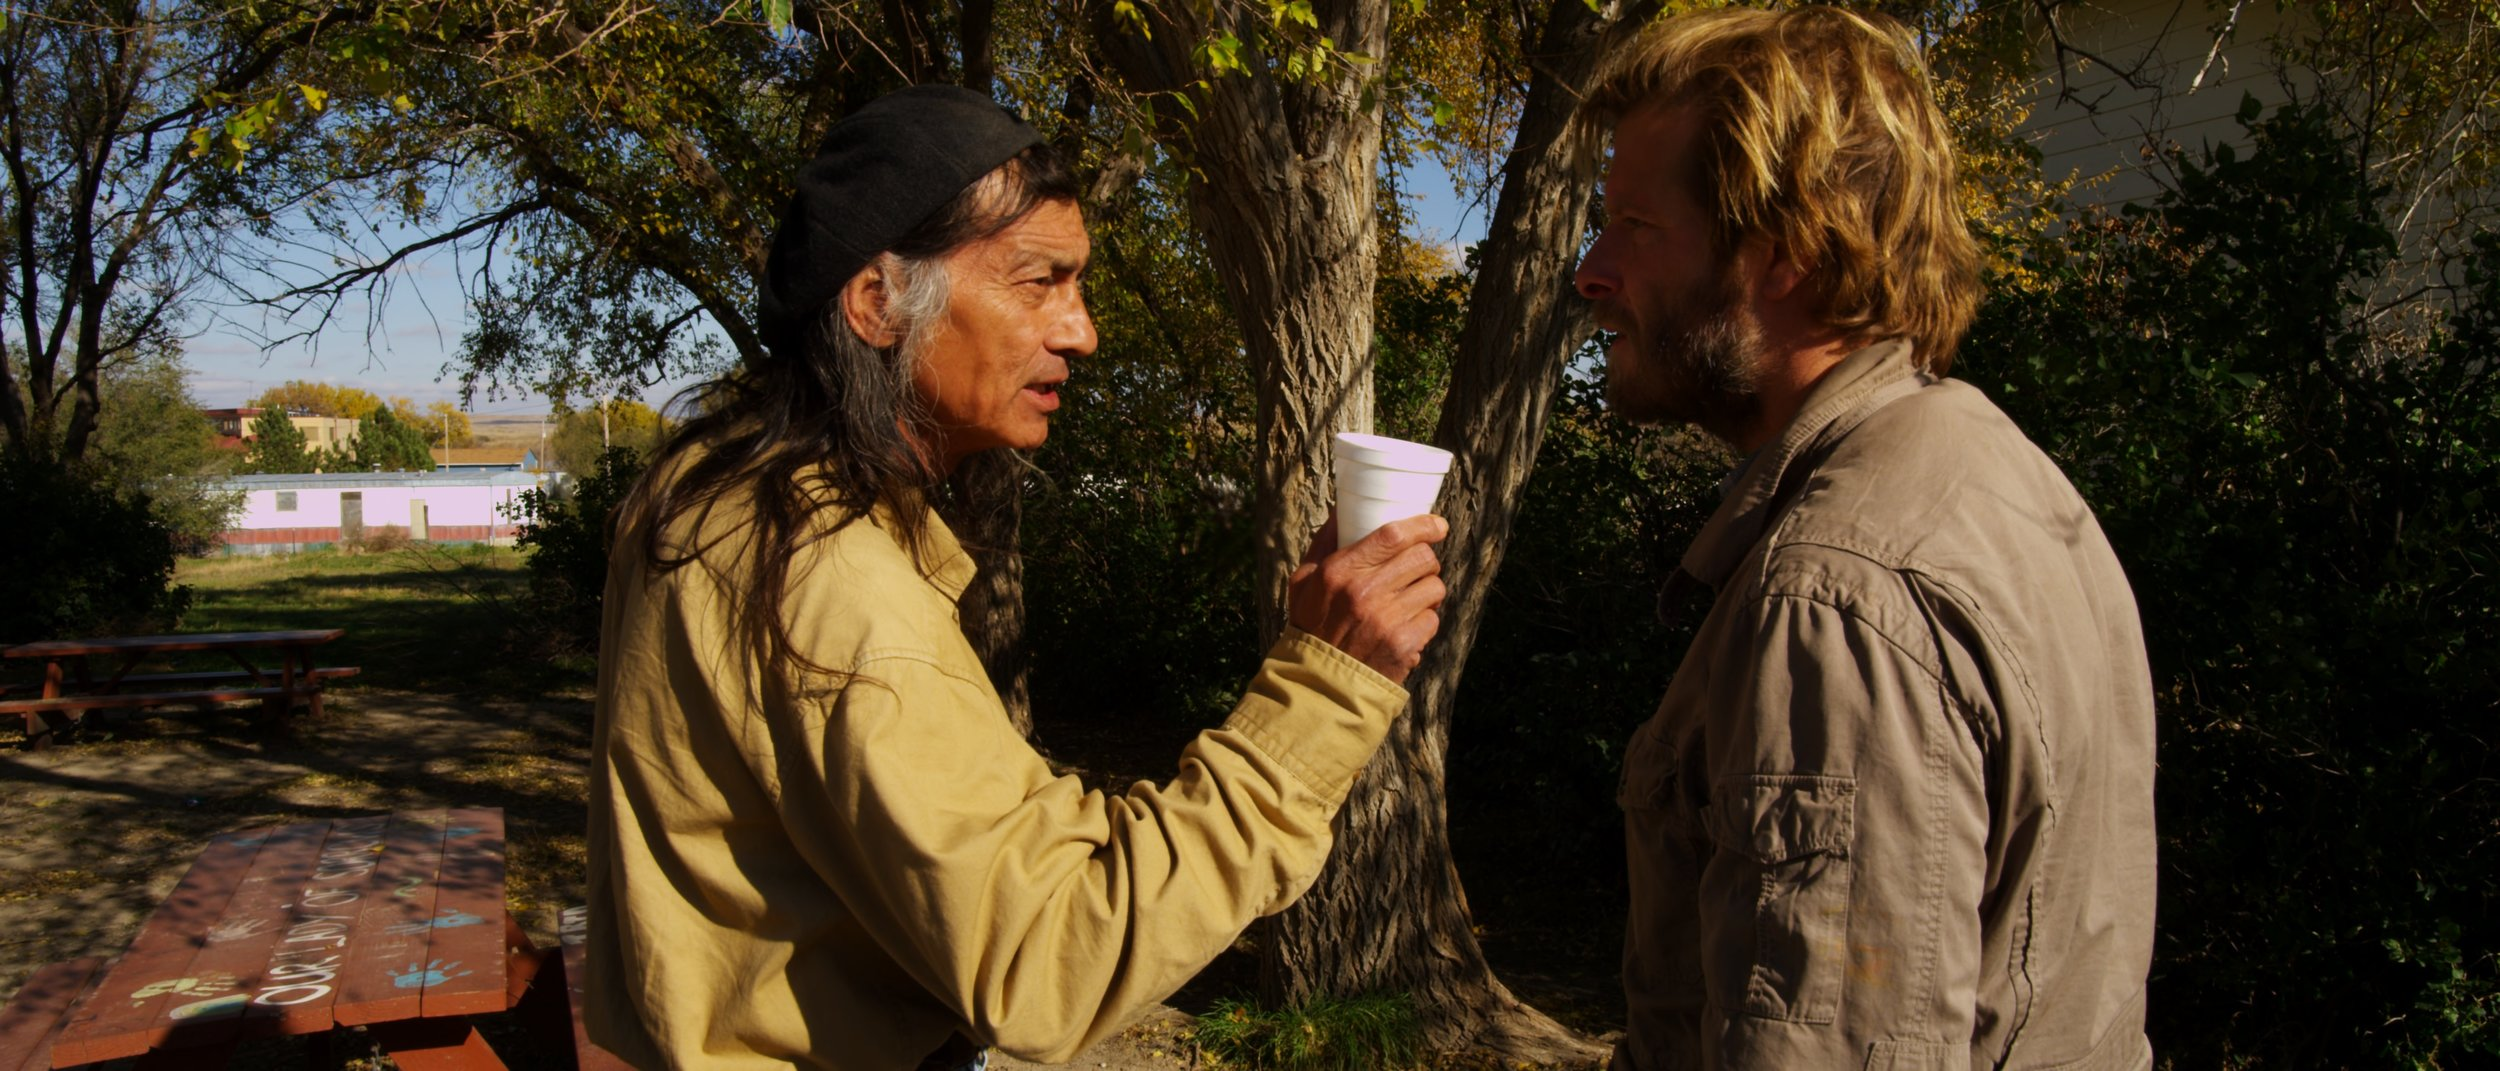 MAS - Landmark Native Film, Neither Wolf Nor Dog, Opens At The Valley Cinema In Wasilla, AK On September 15th & Will Play For At Least One Week. 4 - Copy.jpg